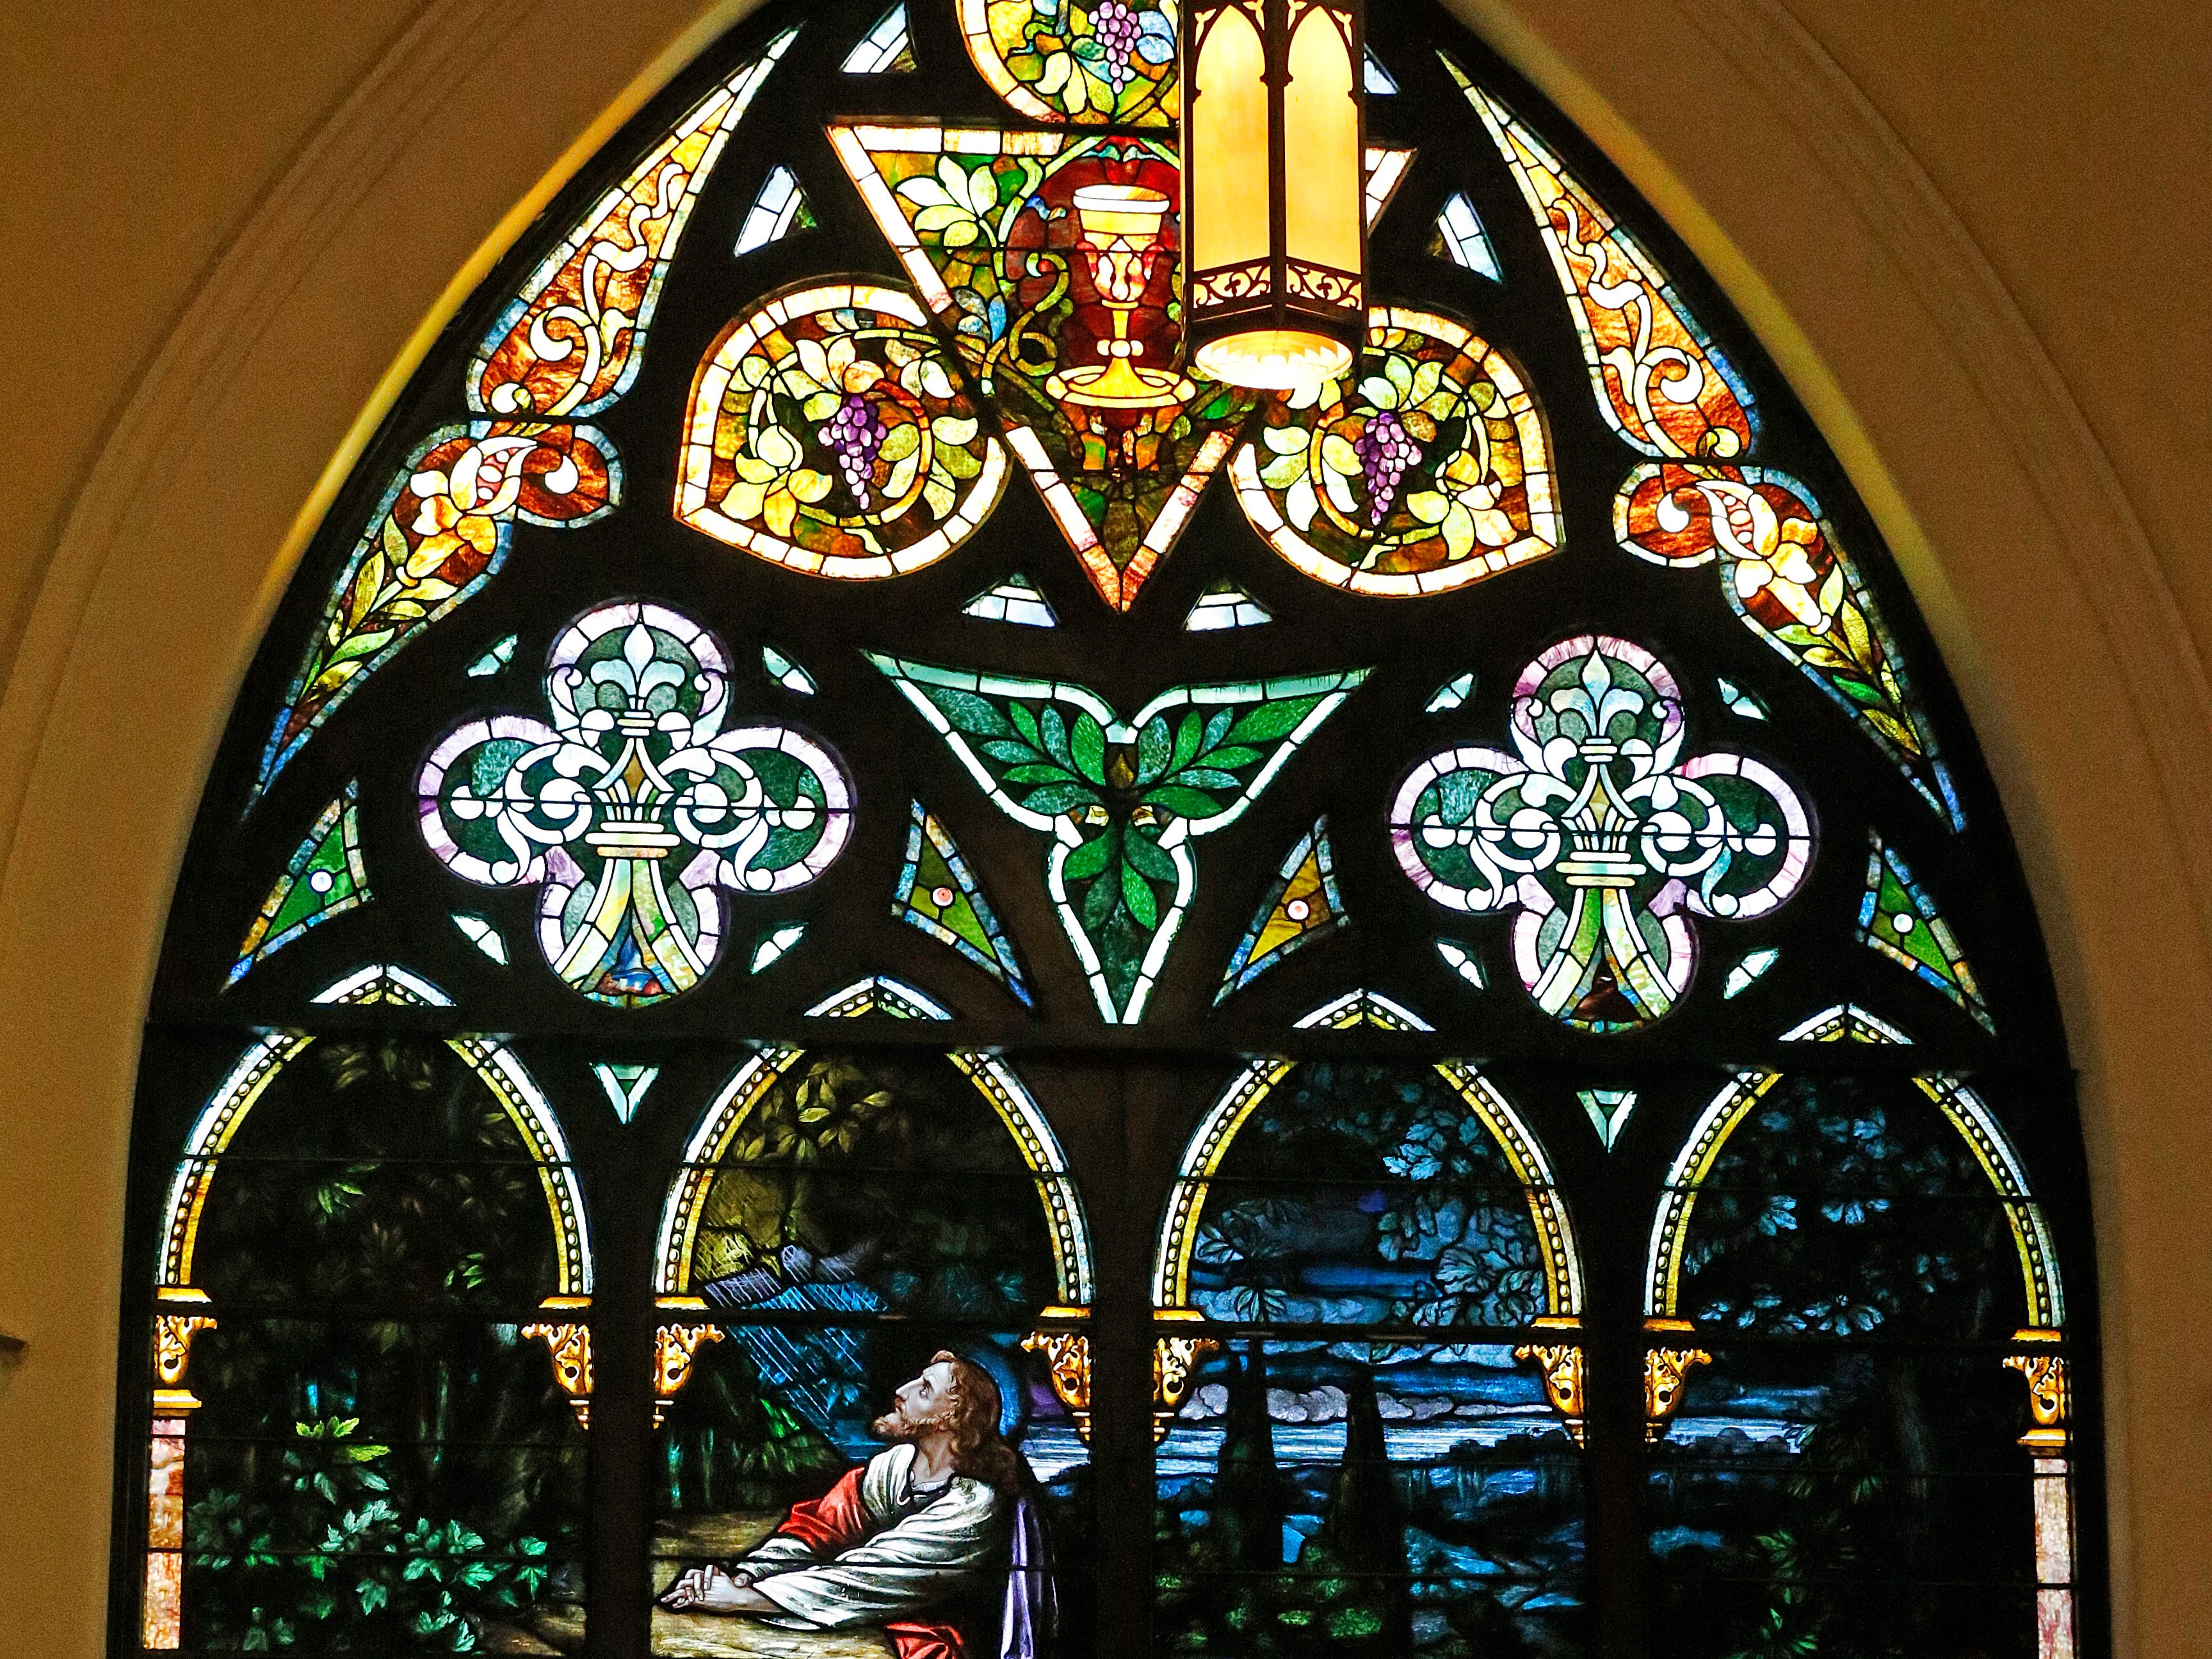 One of the stained-glass windows inside St. John Lutheran Church at the corner of South Seventh and E streets in Richmond.